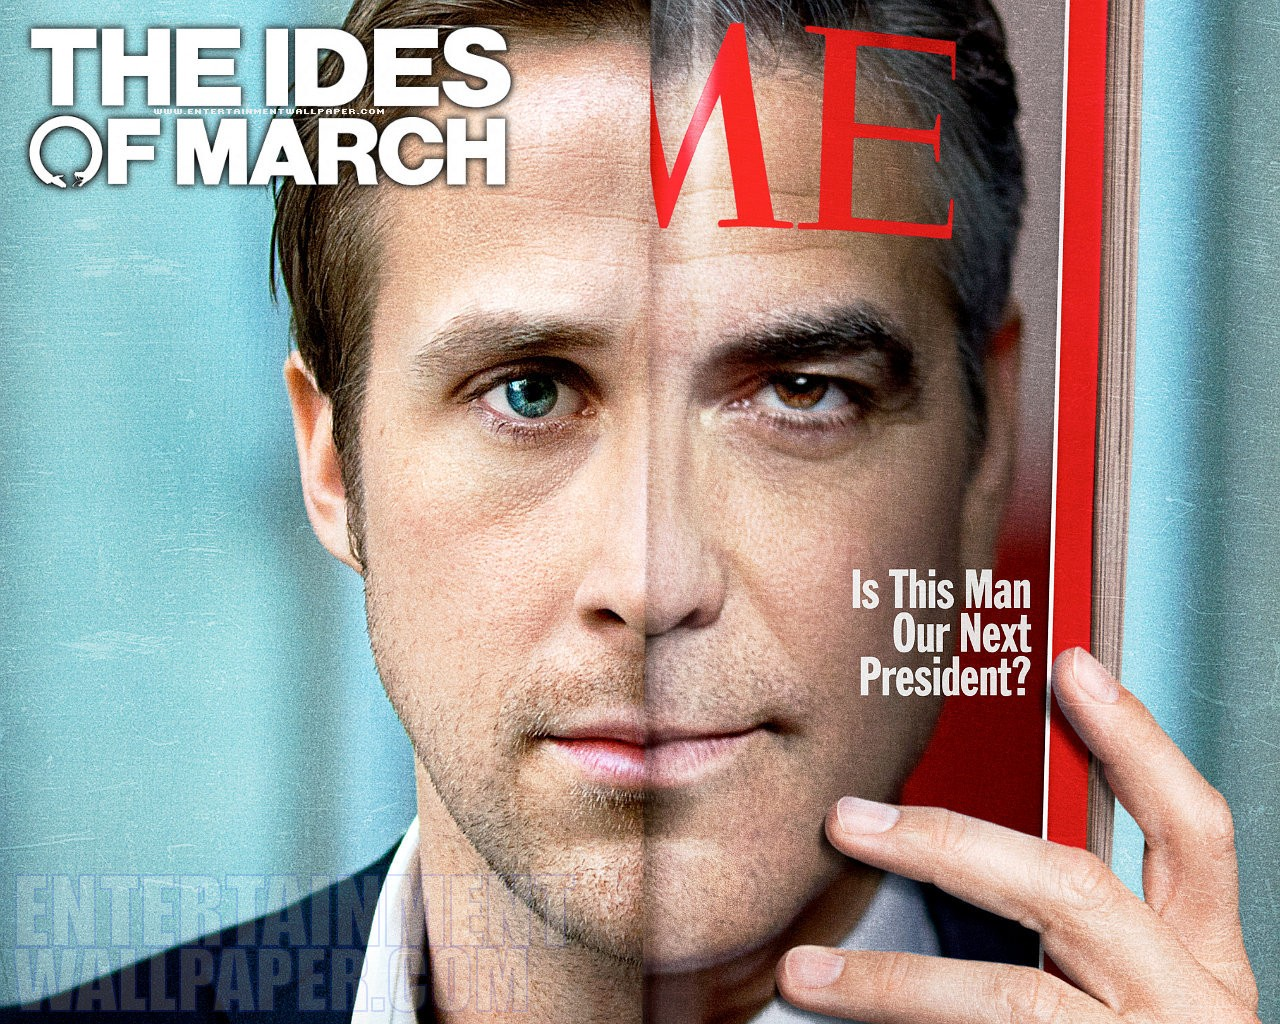 Funny Ides of March